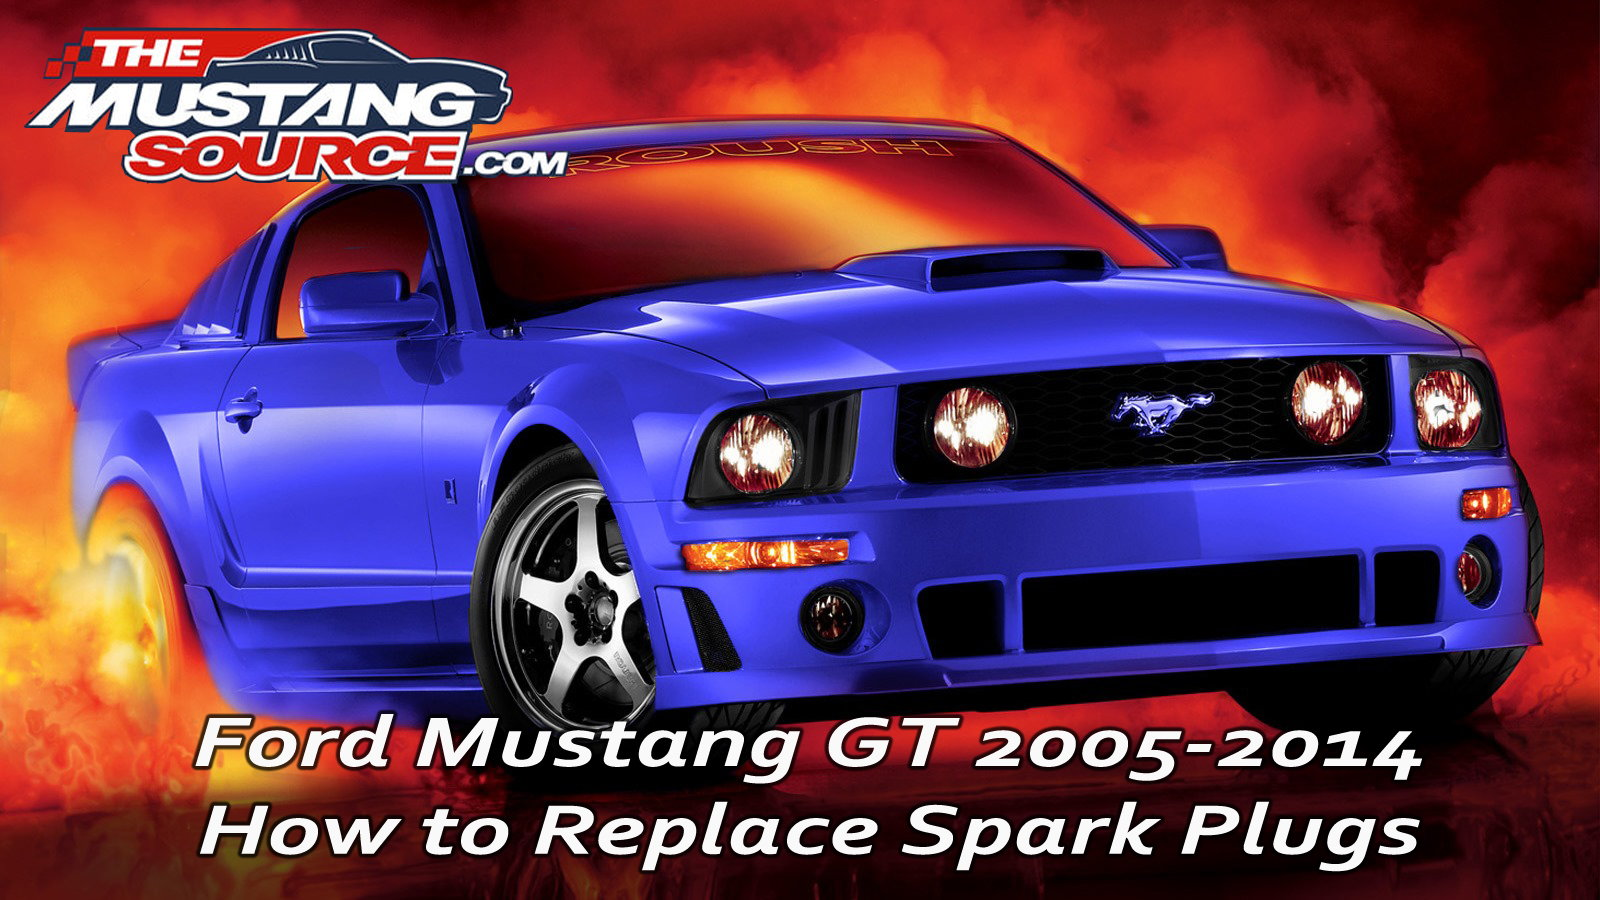 How to Replace Spark Plugs in your Ford Mustang GT